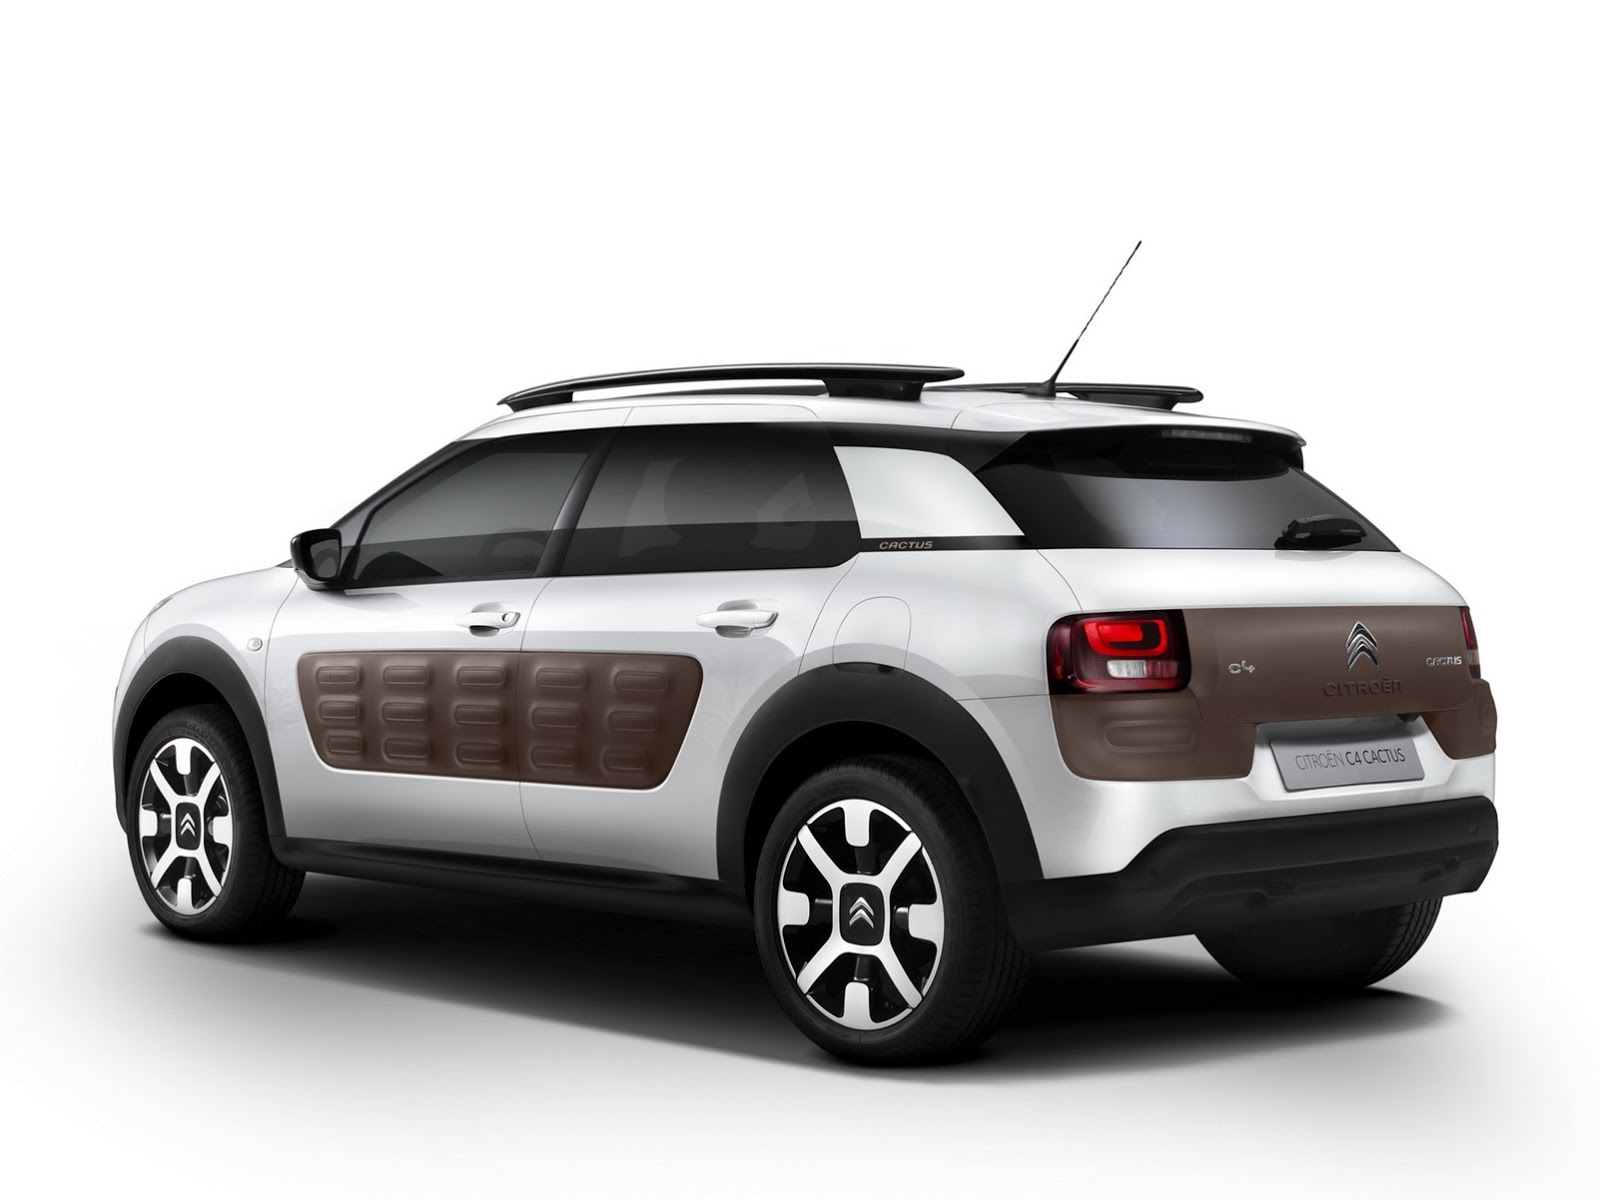 citroen c4 cactus interior and exterior photos leaked. Black Bedroom Furniture Sets. Home Design Ideas